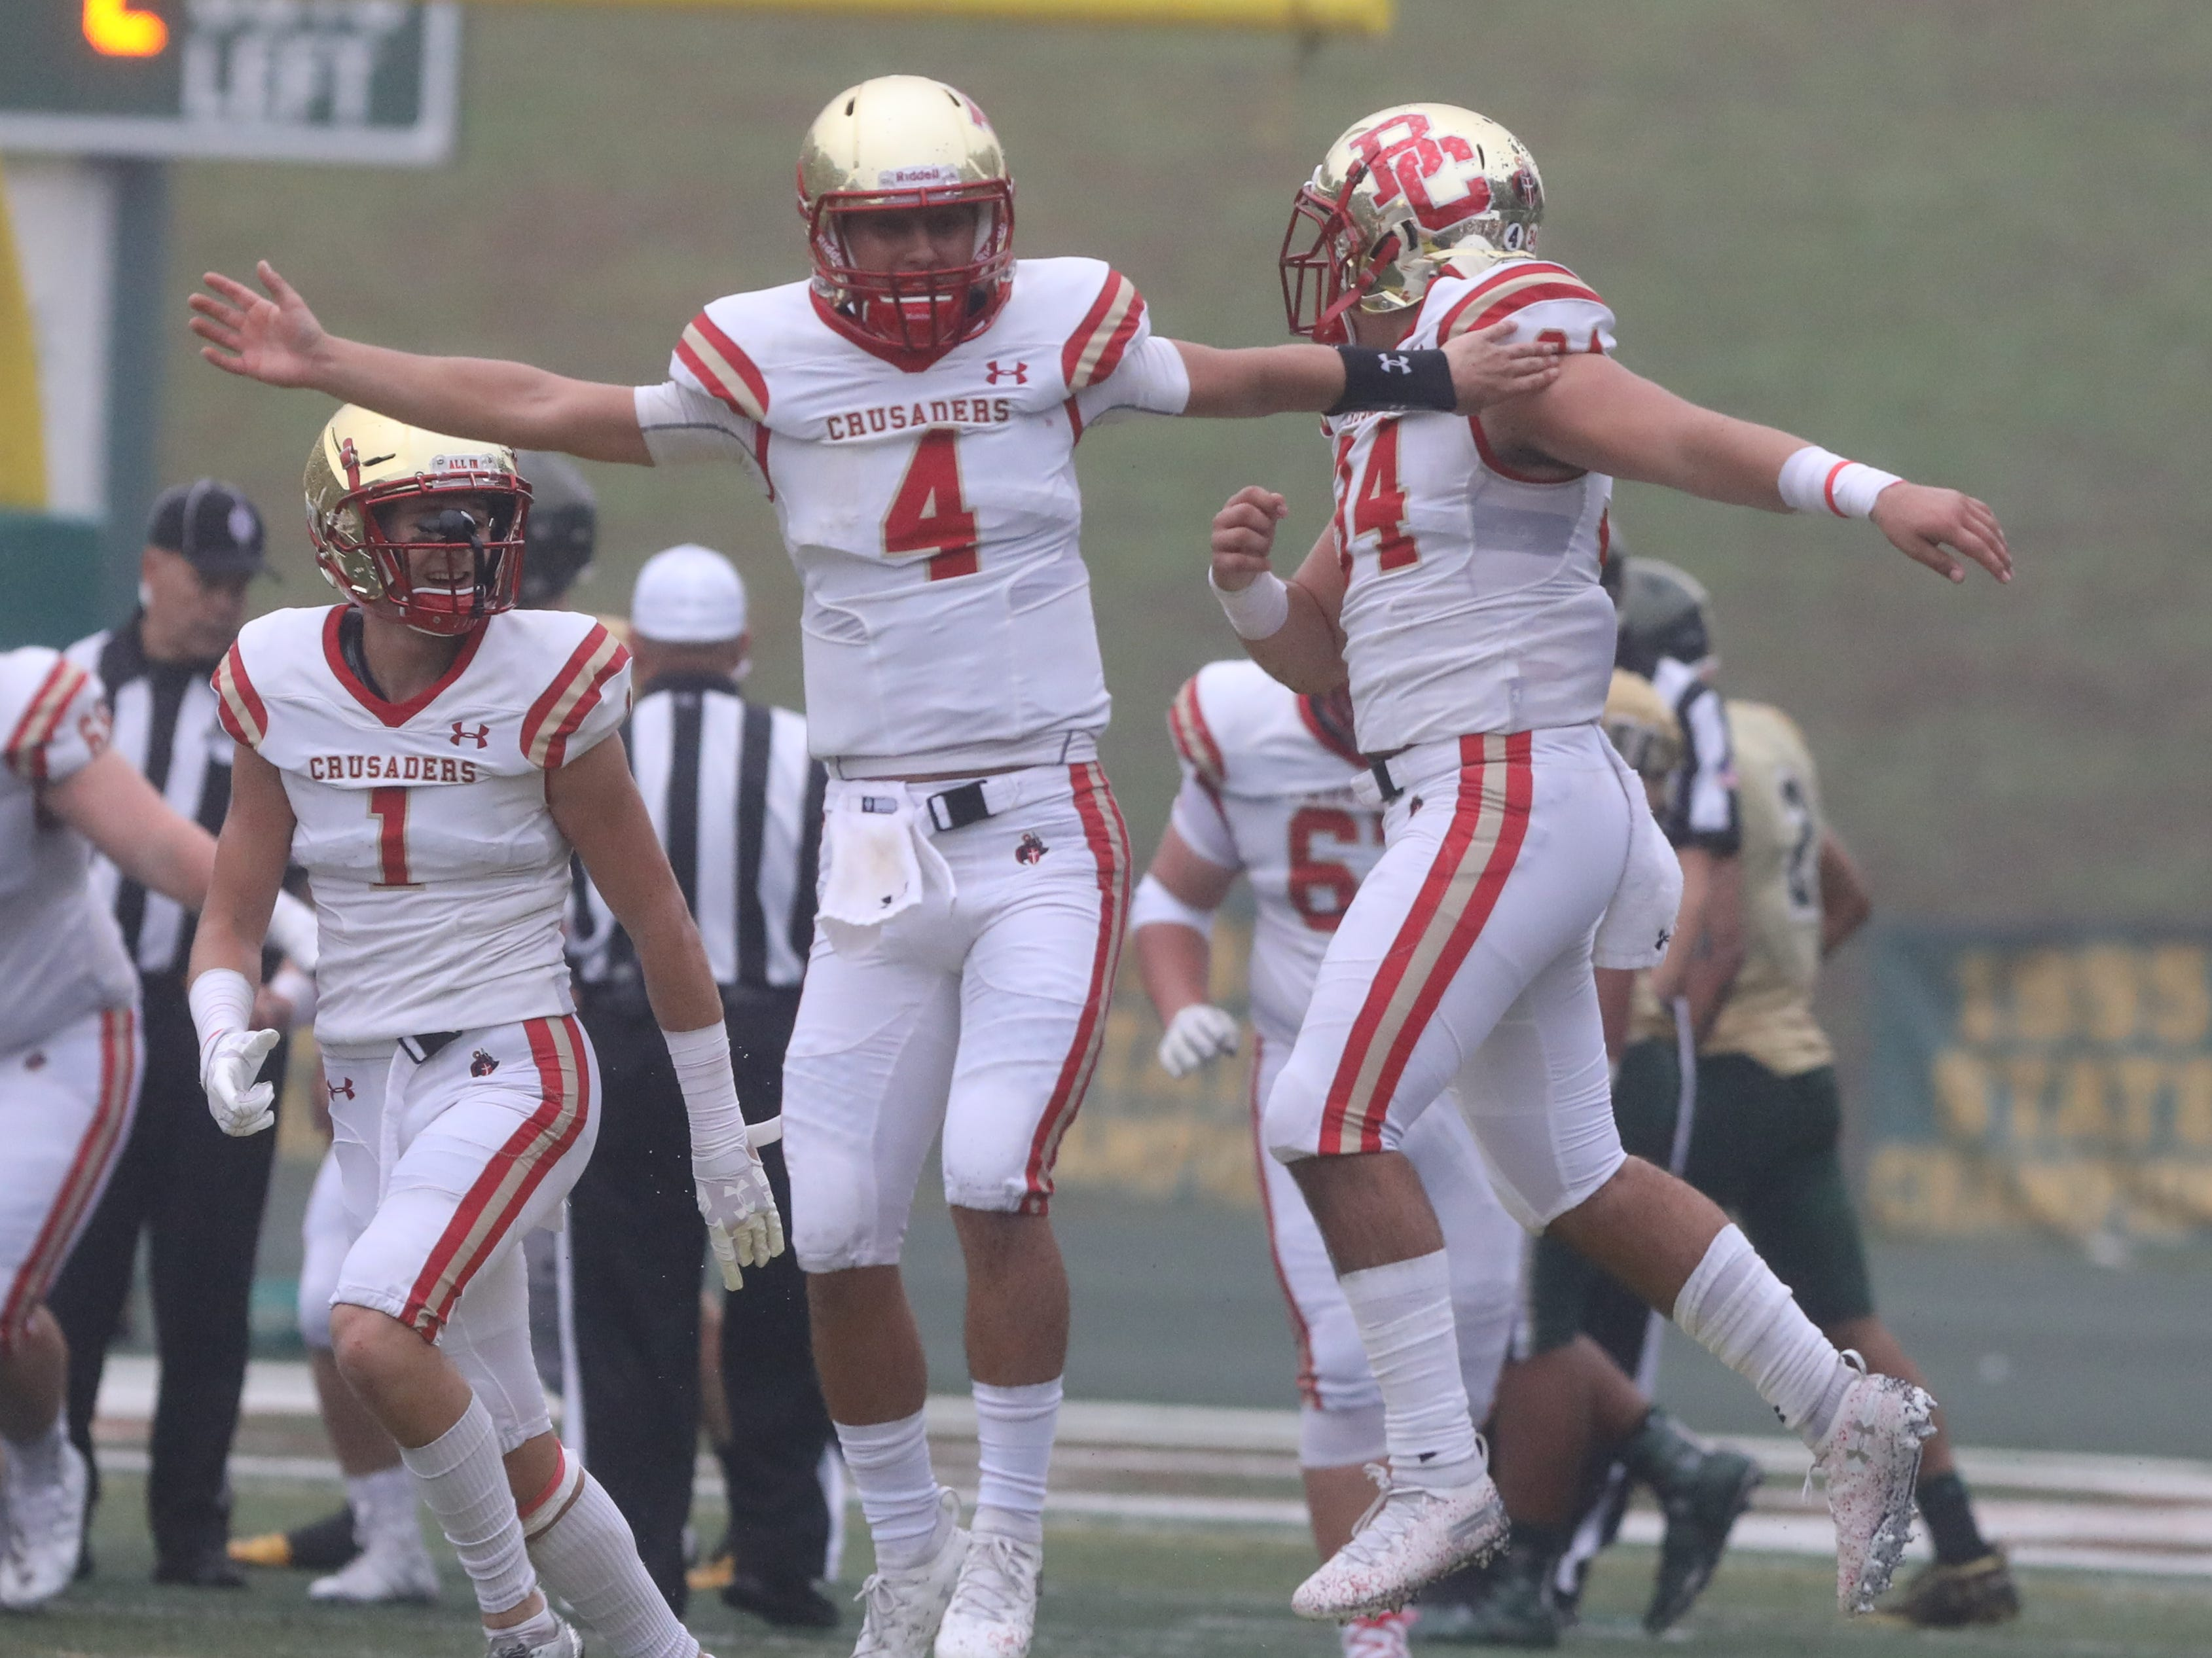 Andrew Boel of Bergen Catholic celebrates his team's win at the end of the game.